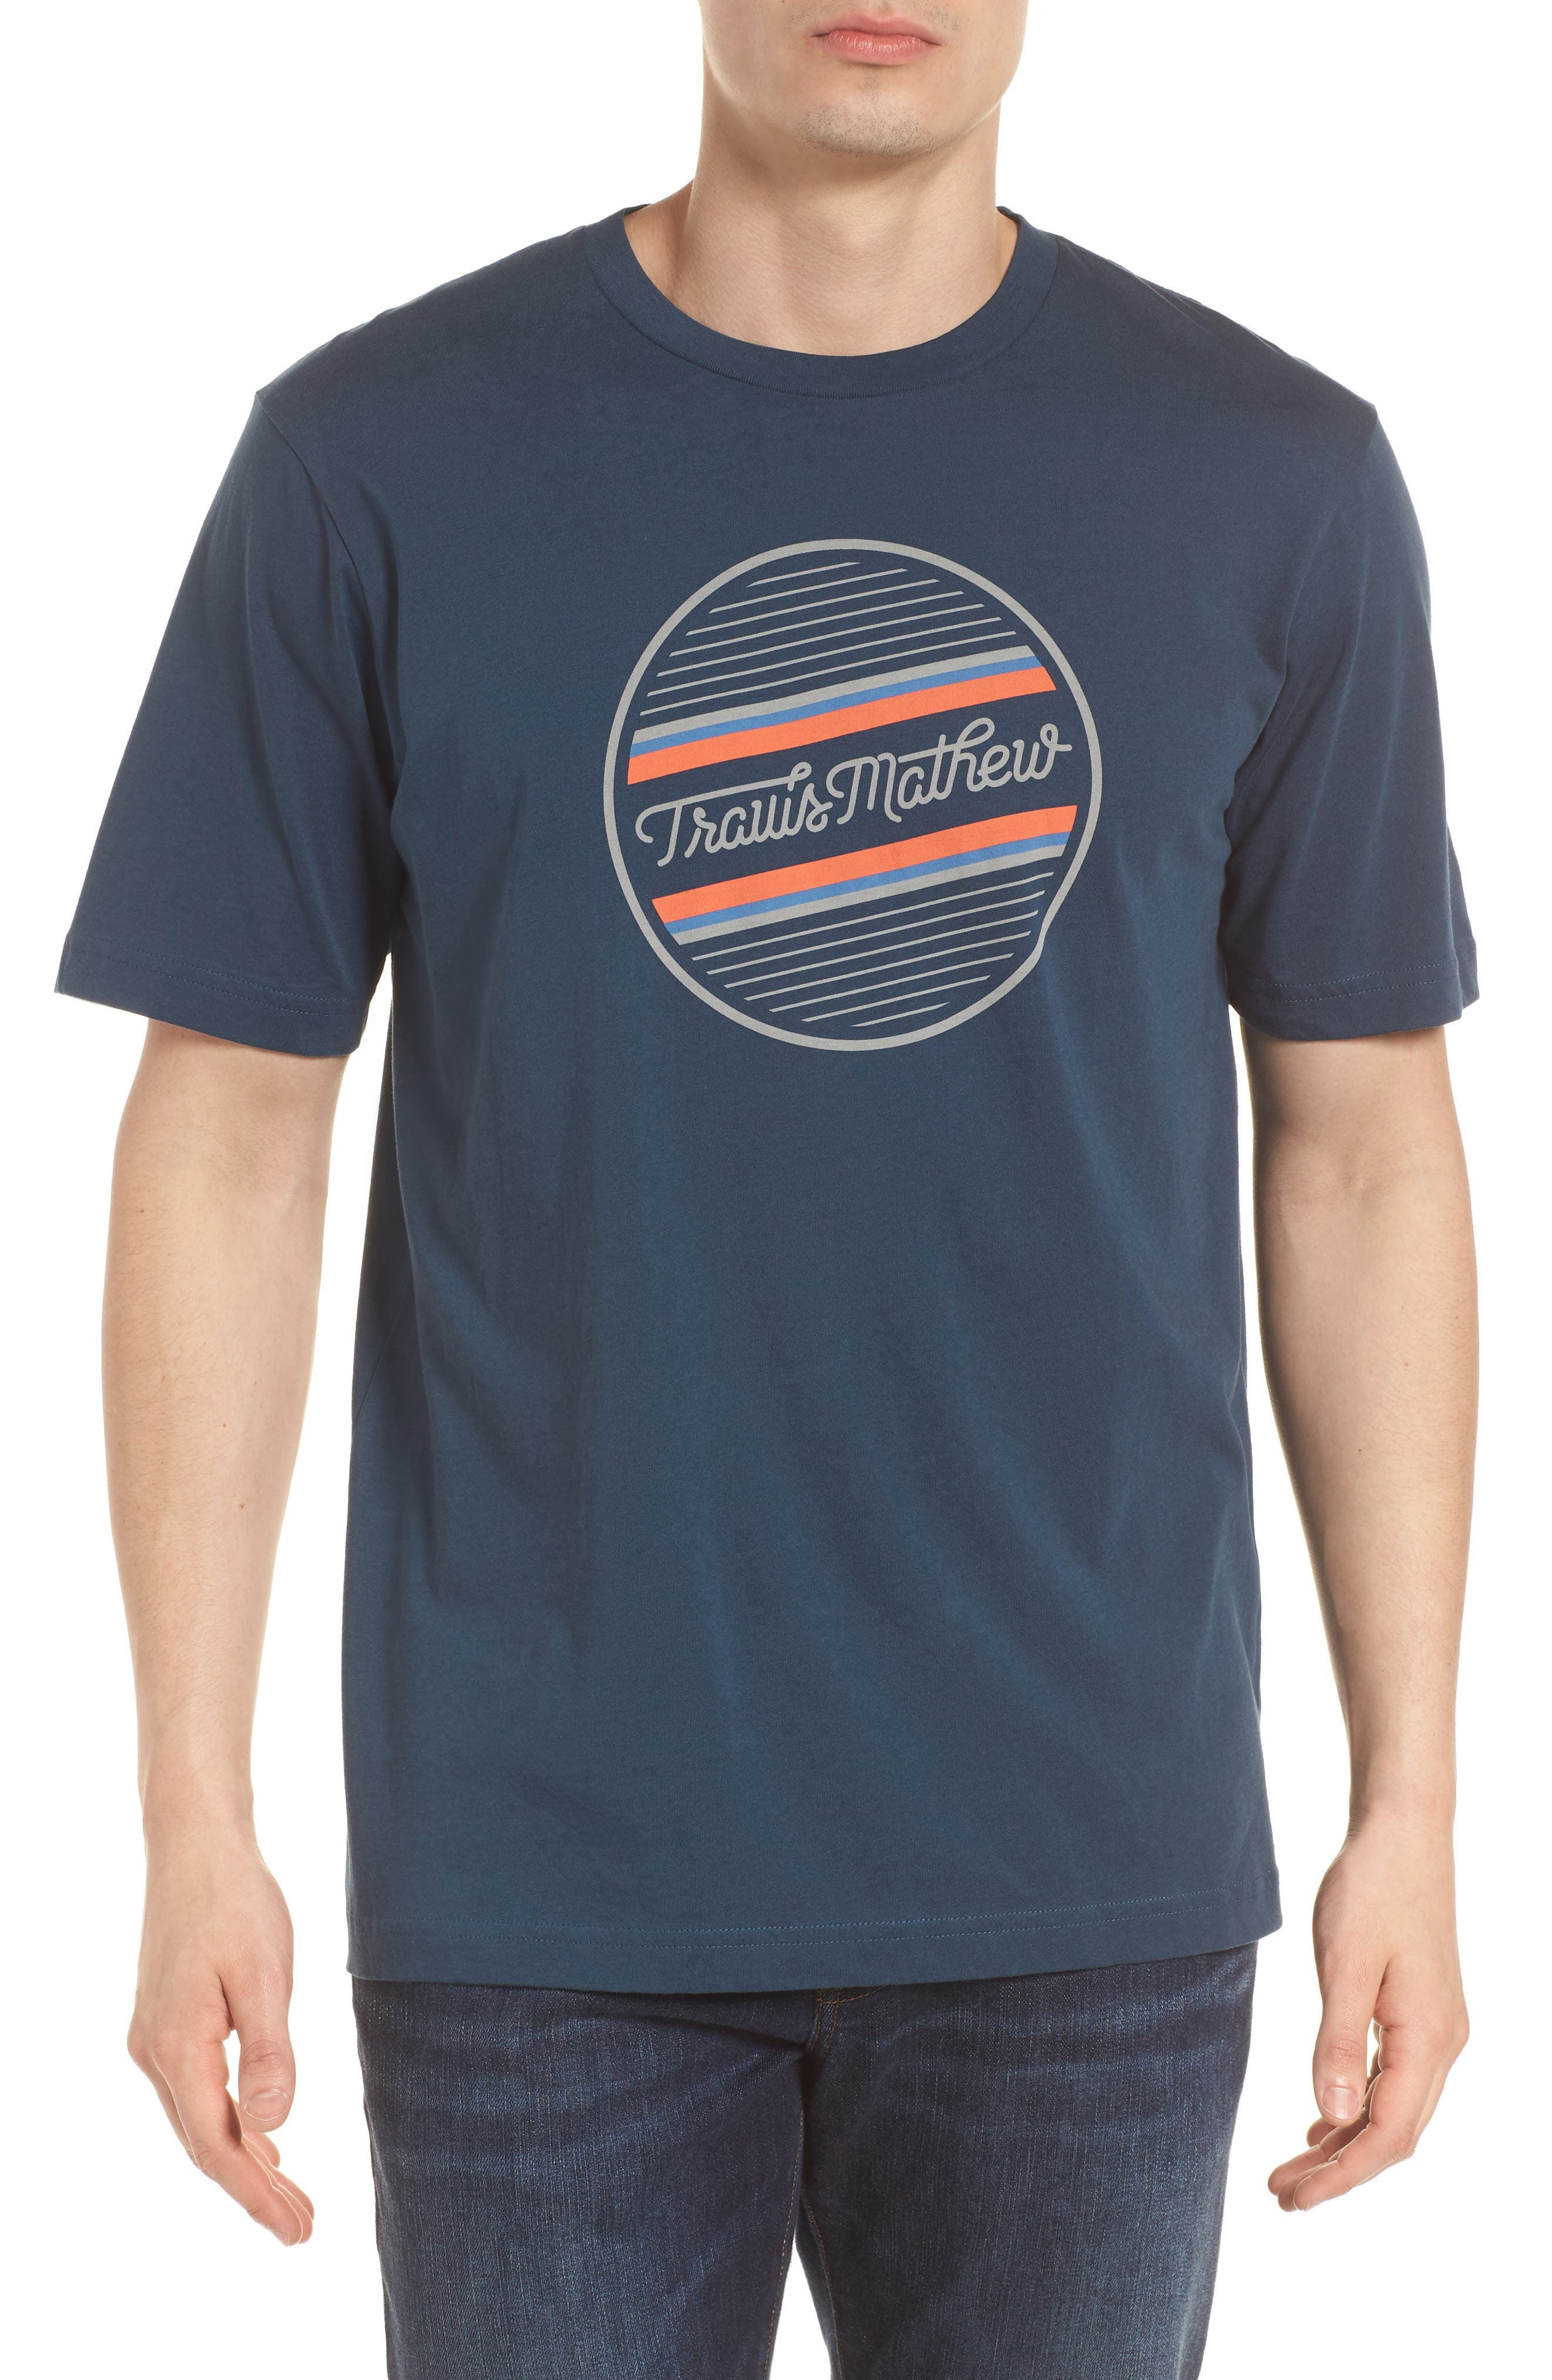 Travis Mathew Officially Unofficial Graphic T-Shirt